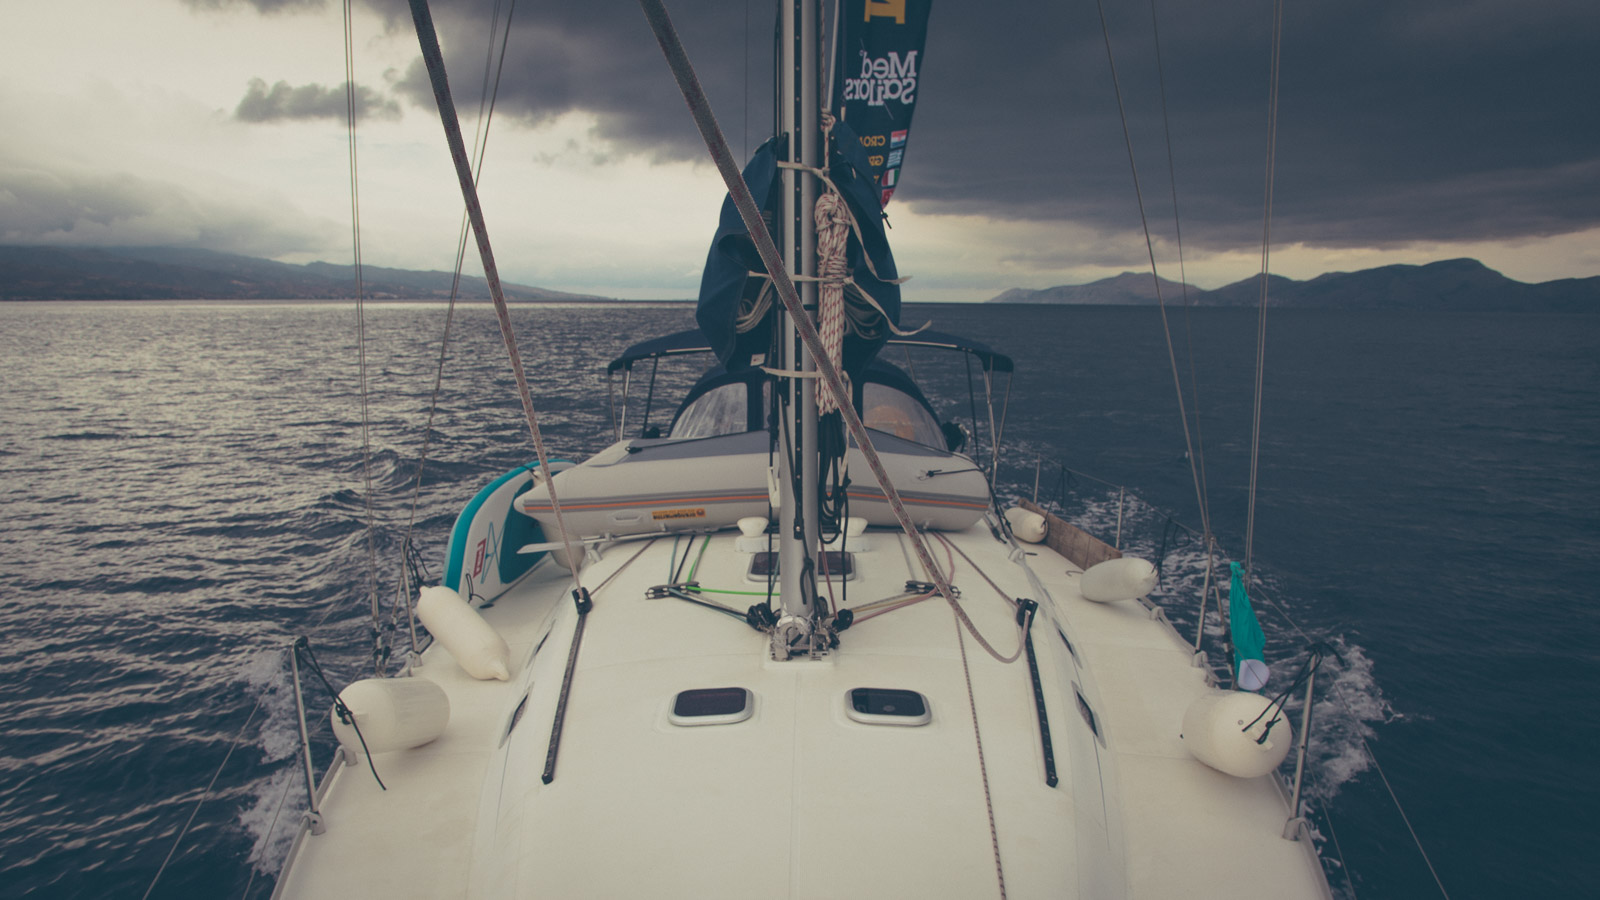 Sail in grey day